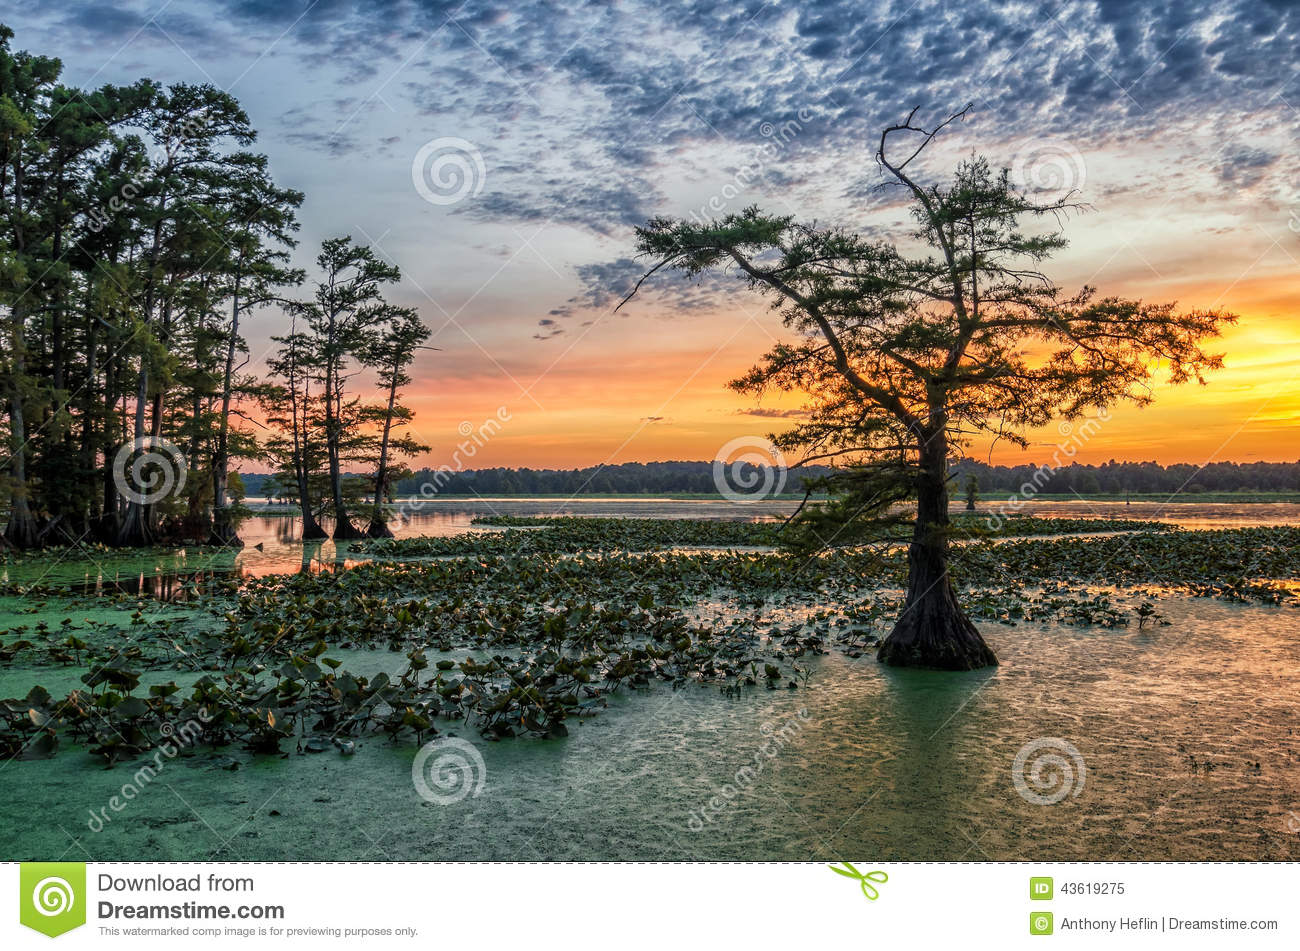 Sunset, Reelfoot Lake in Tennessee